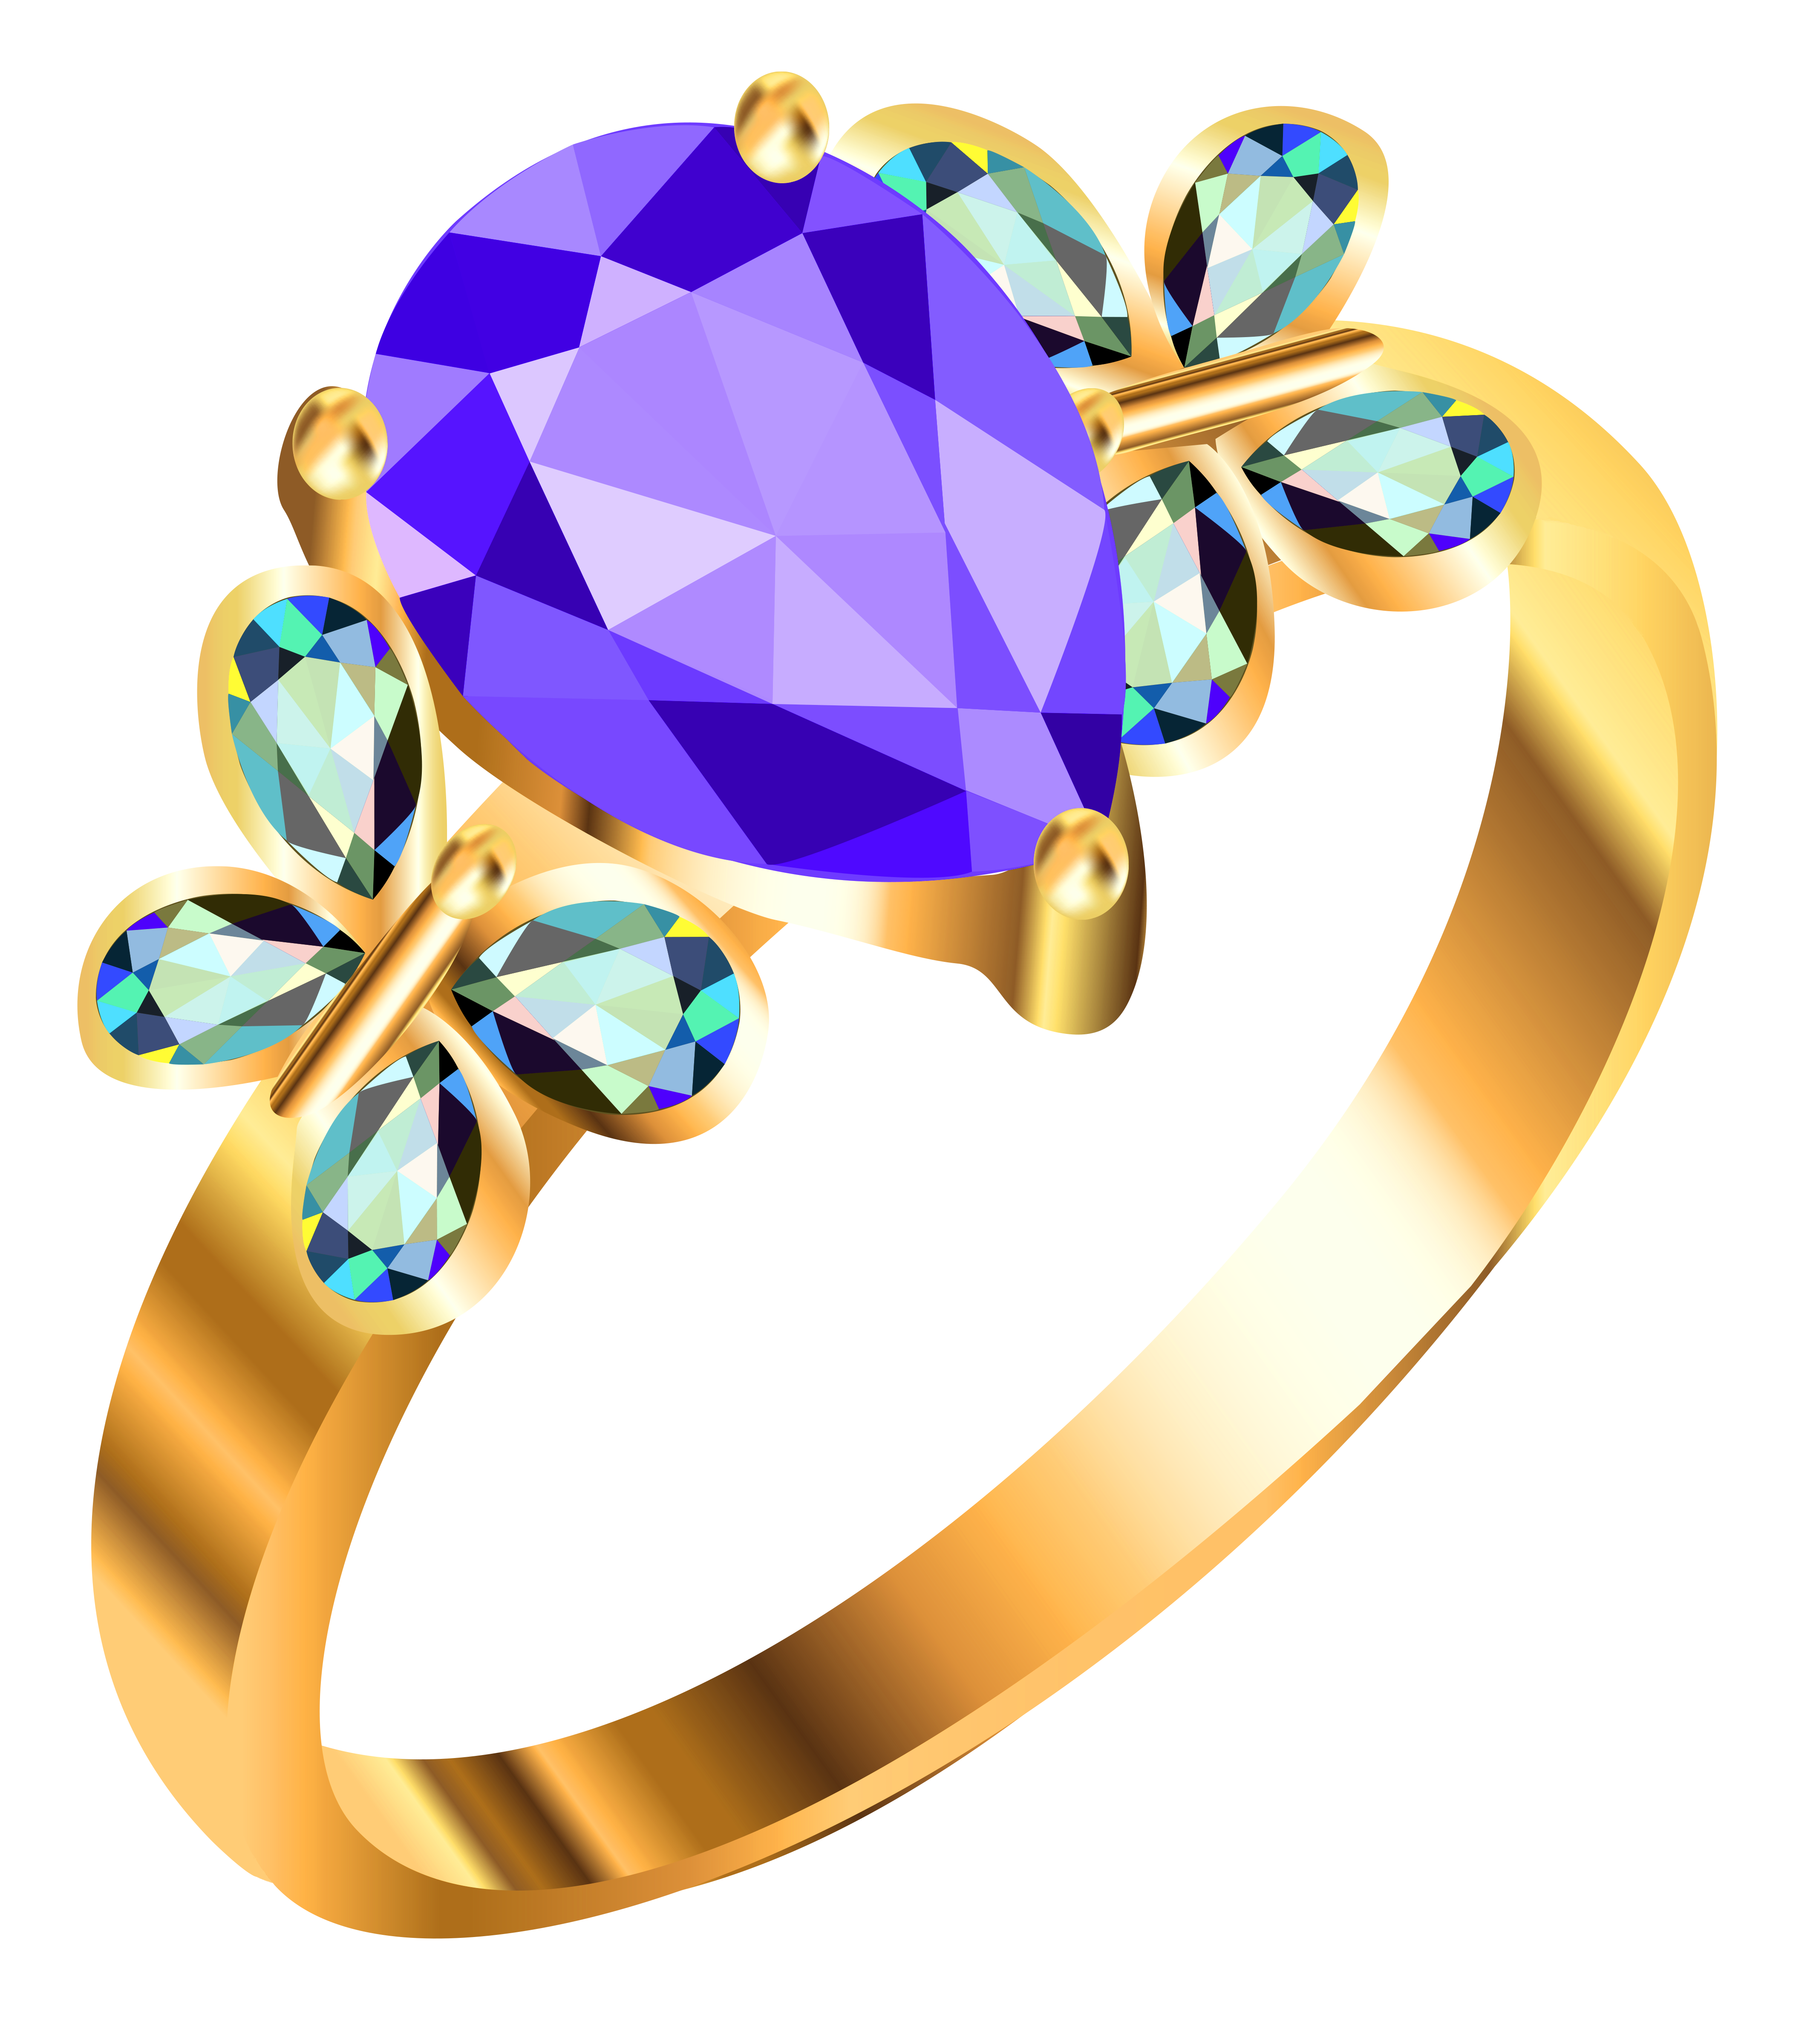 Ring clipart #2, Download drawings